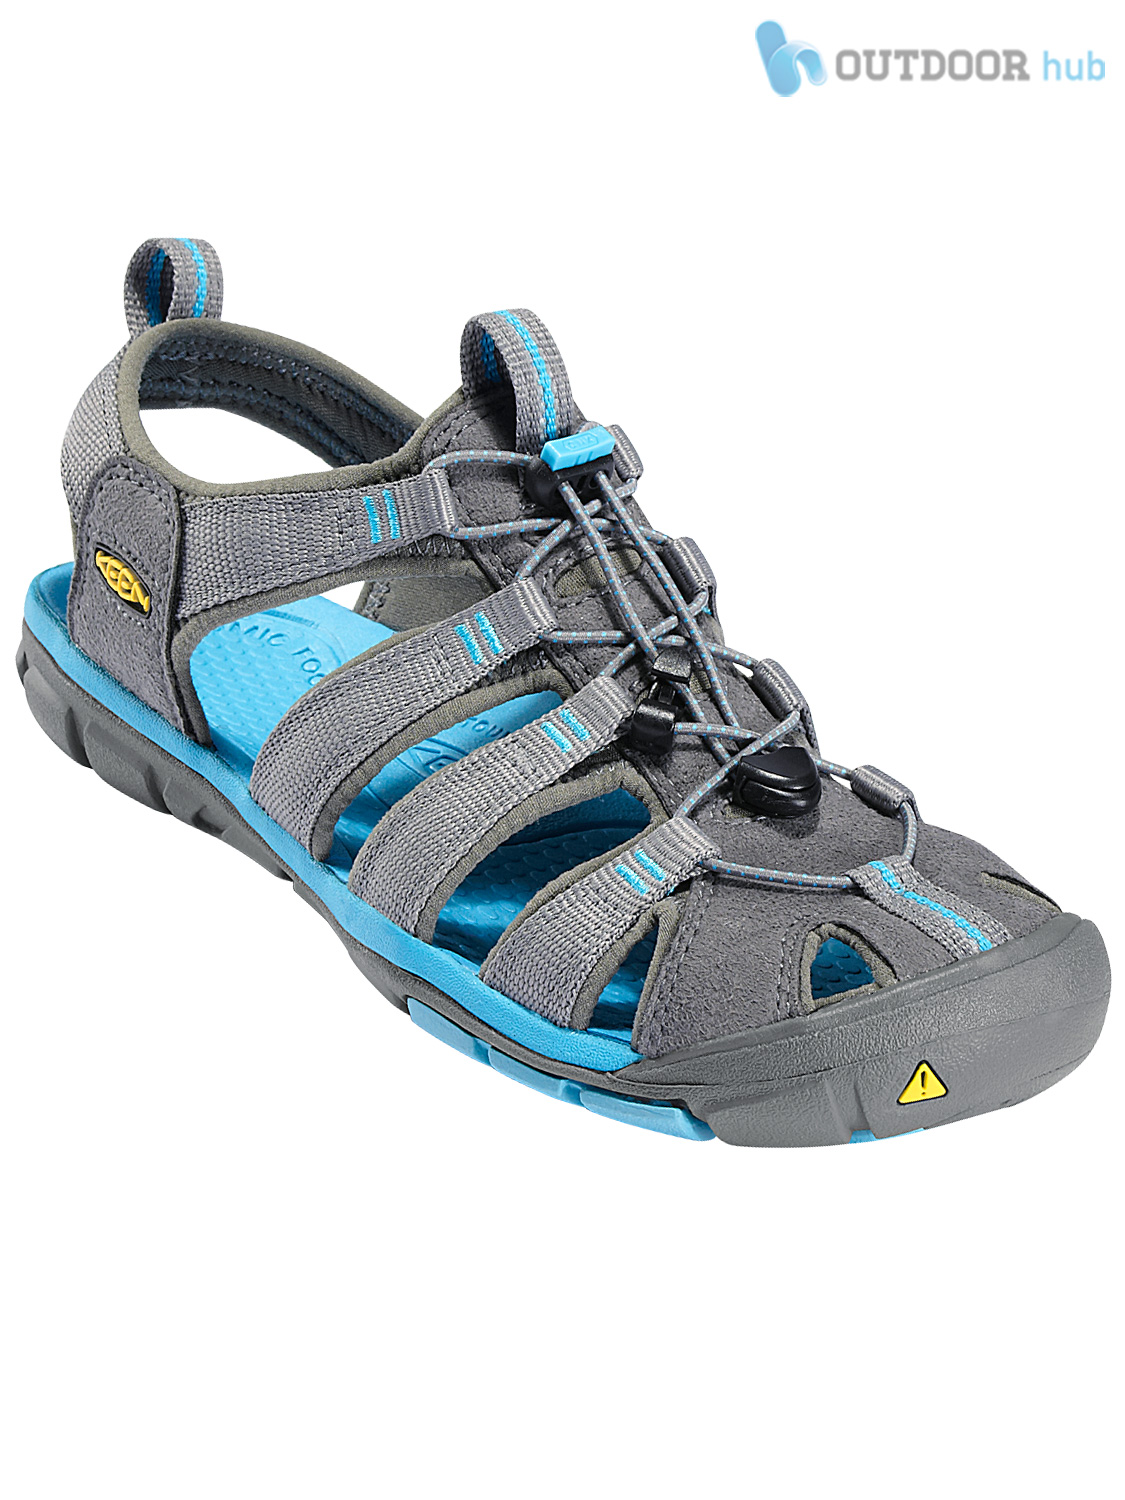 Keen Shoes Washable